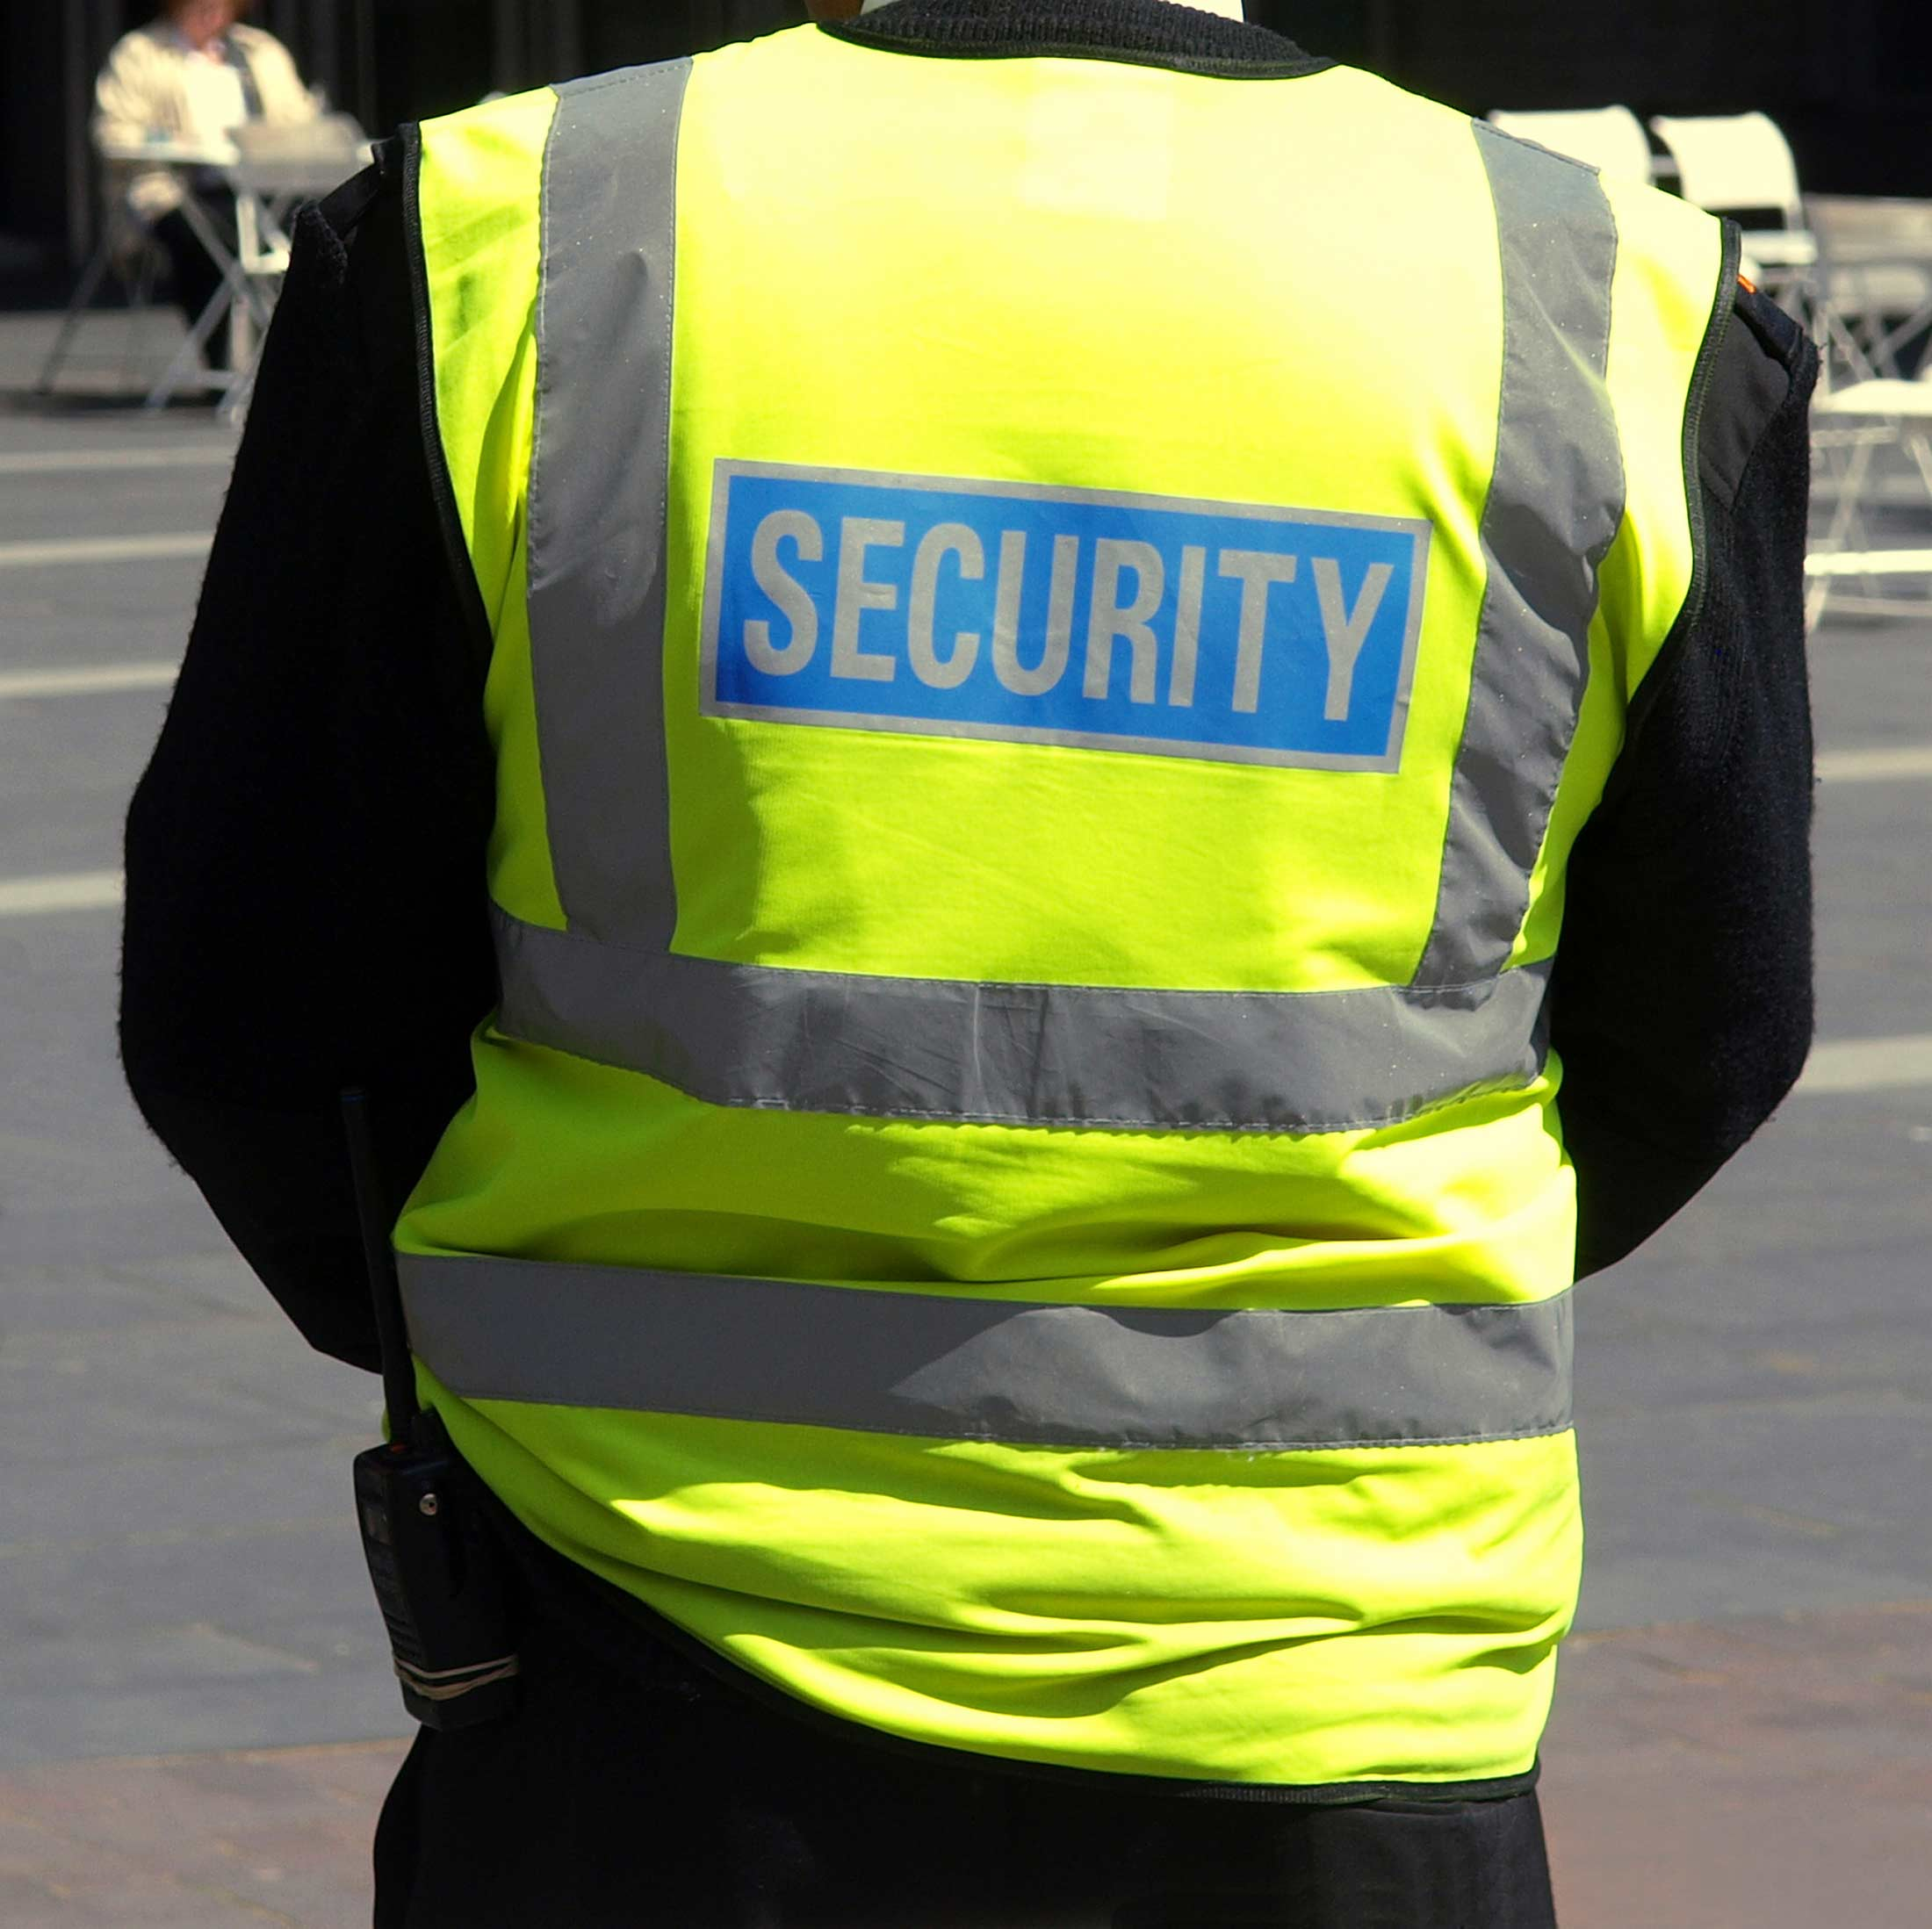 Manned Guarding Services in London